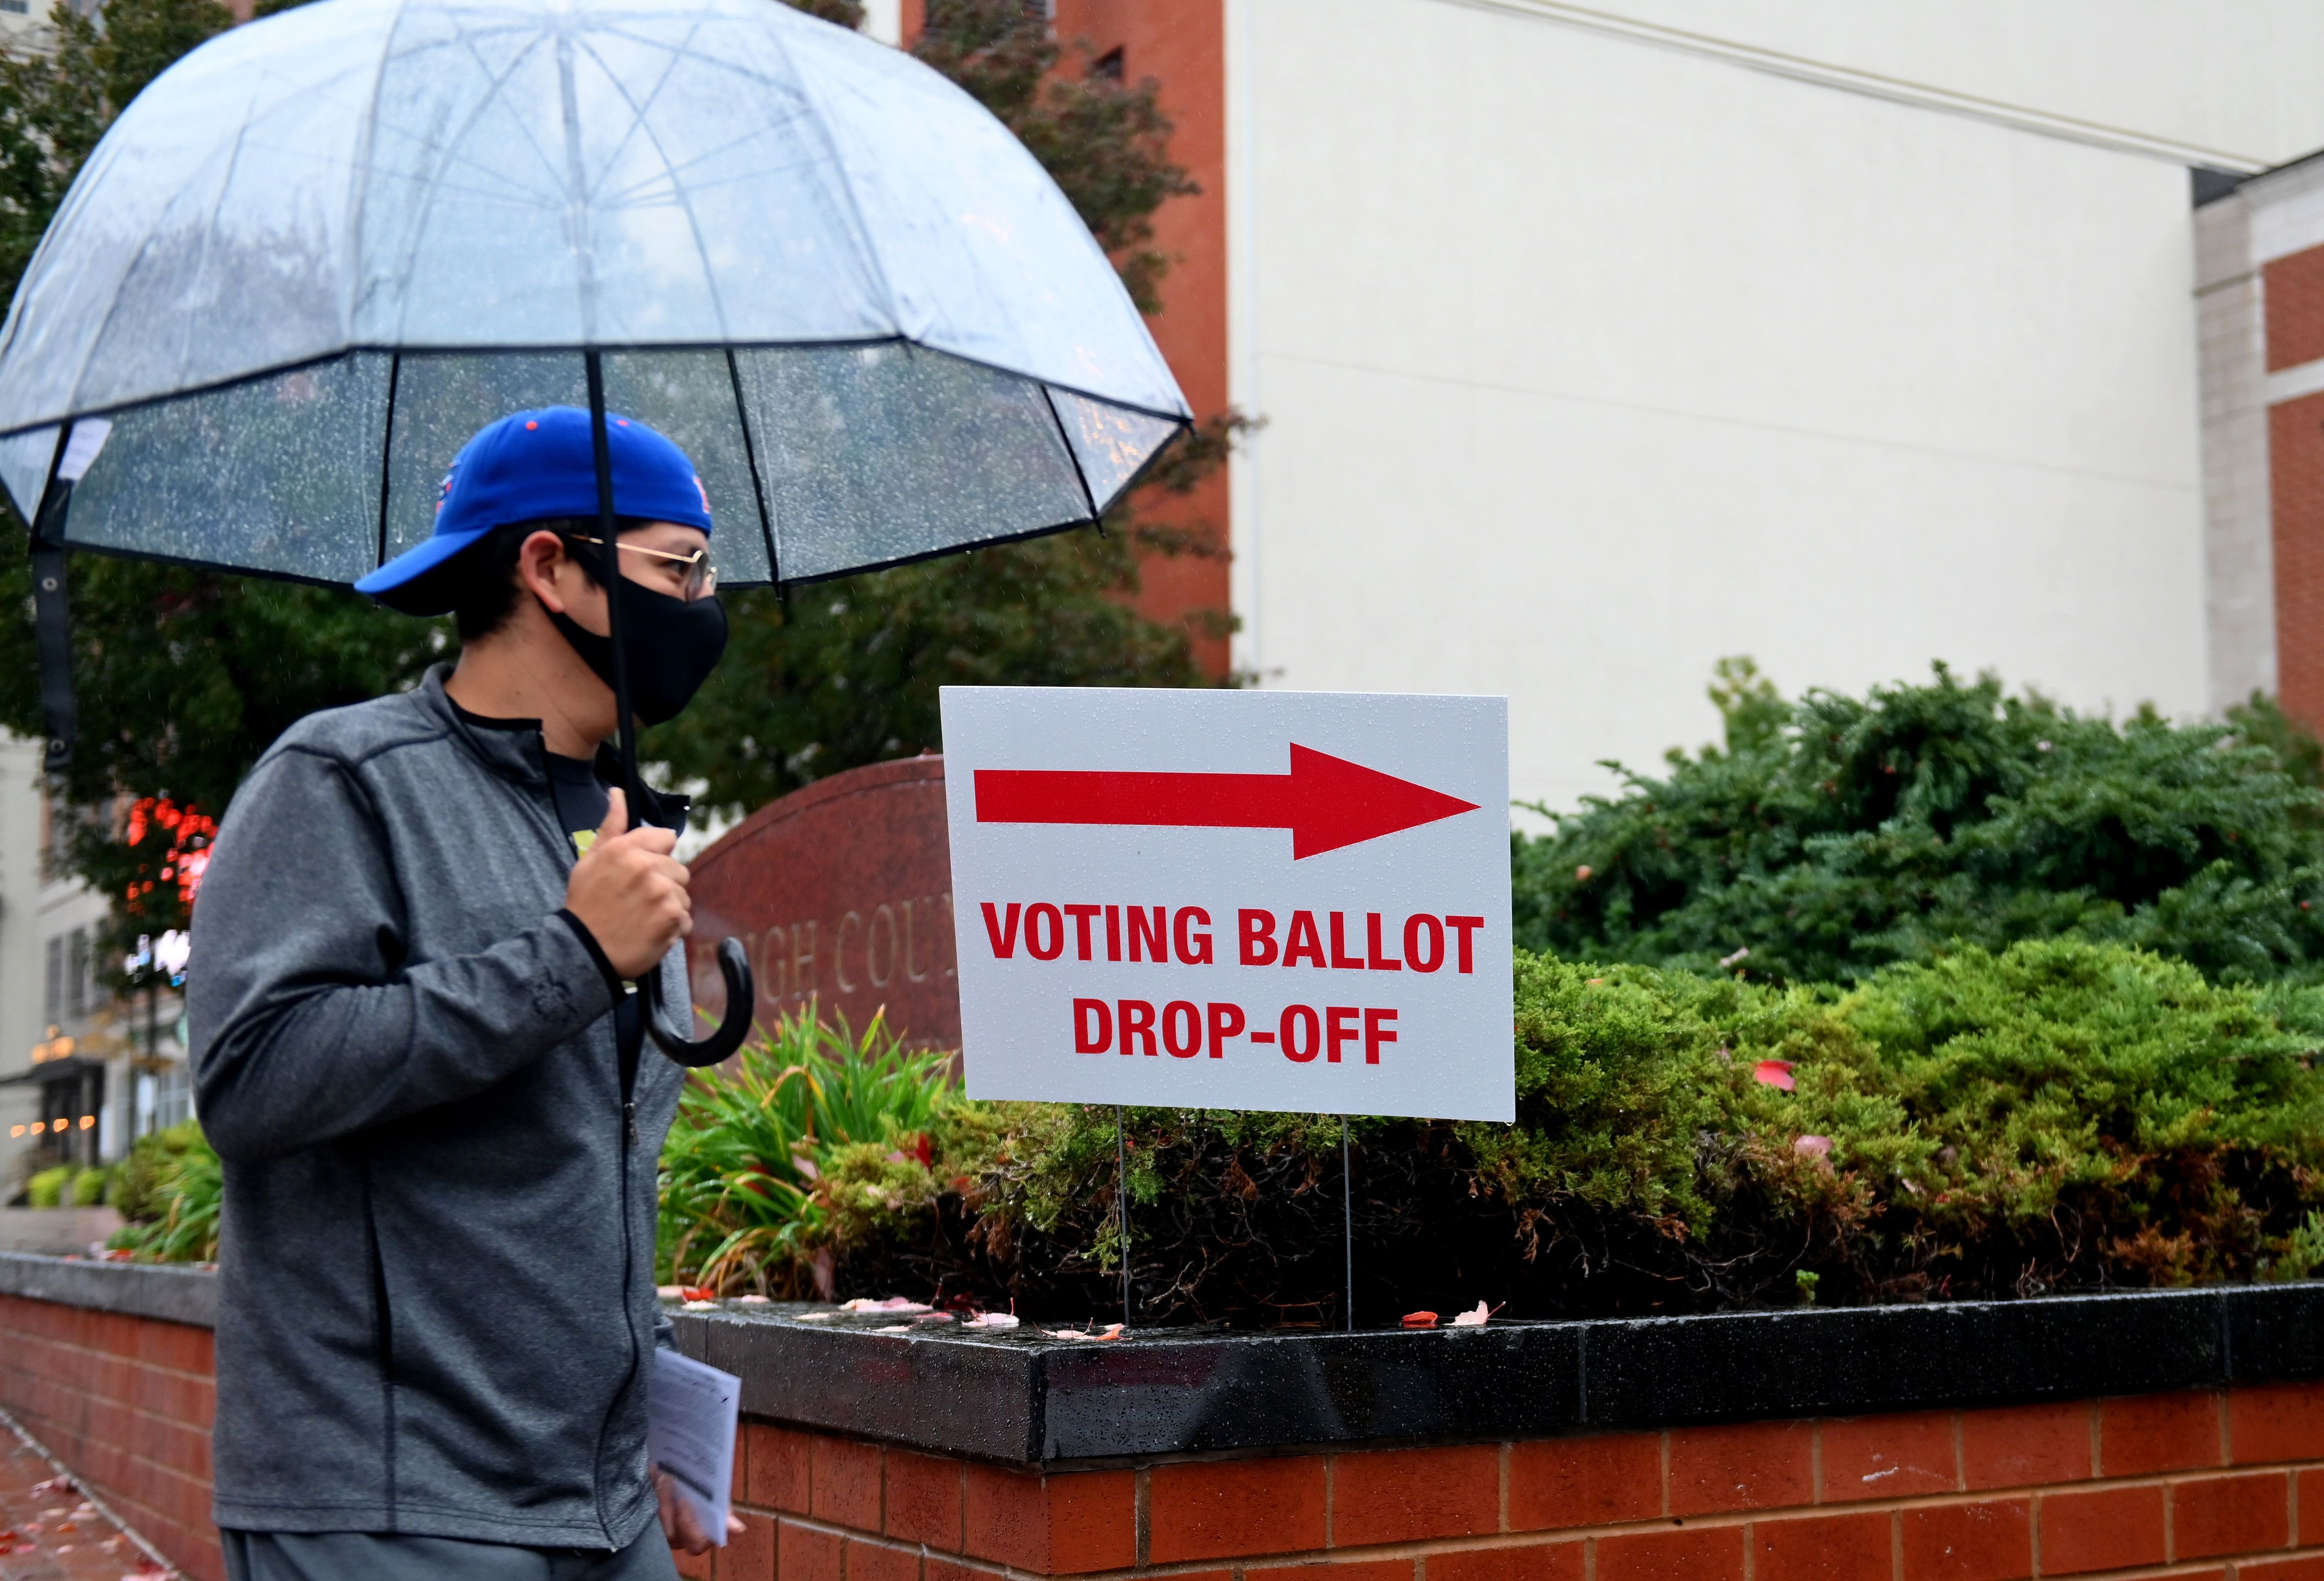 A voter arrives to drop off his ballot